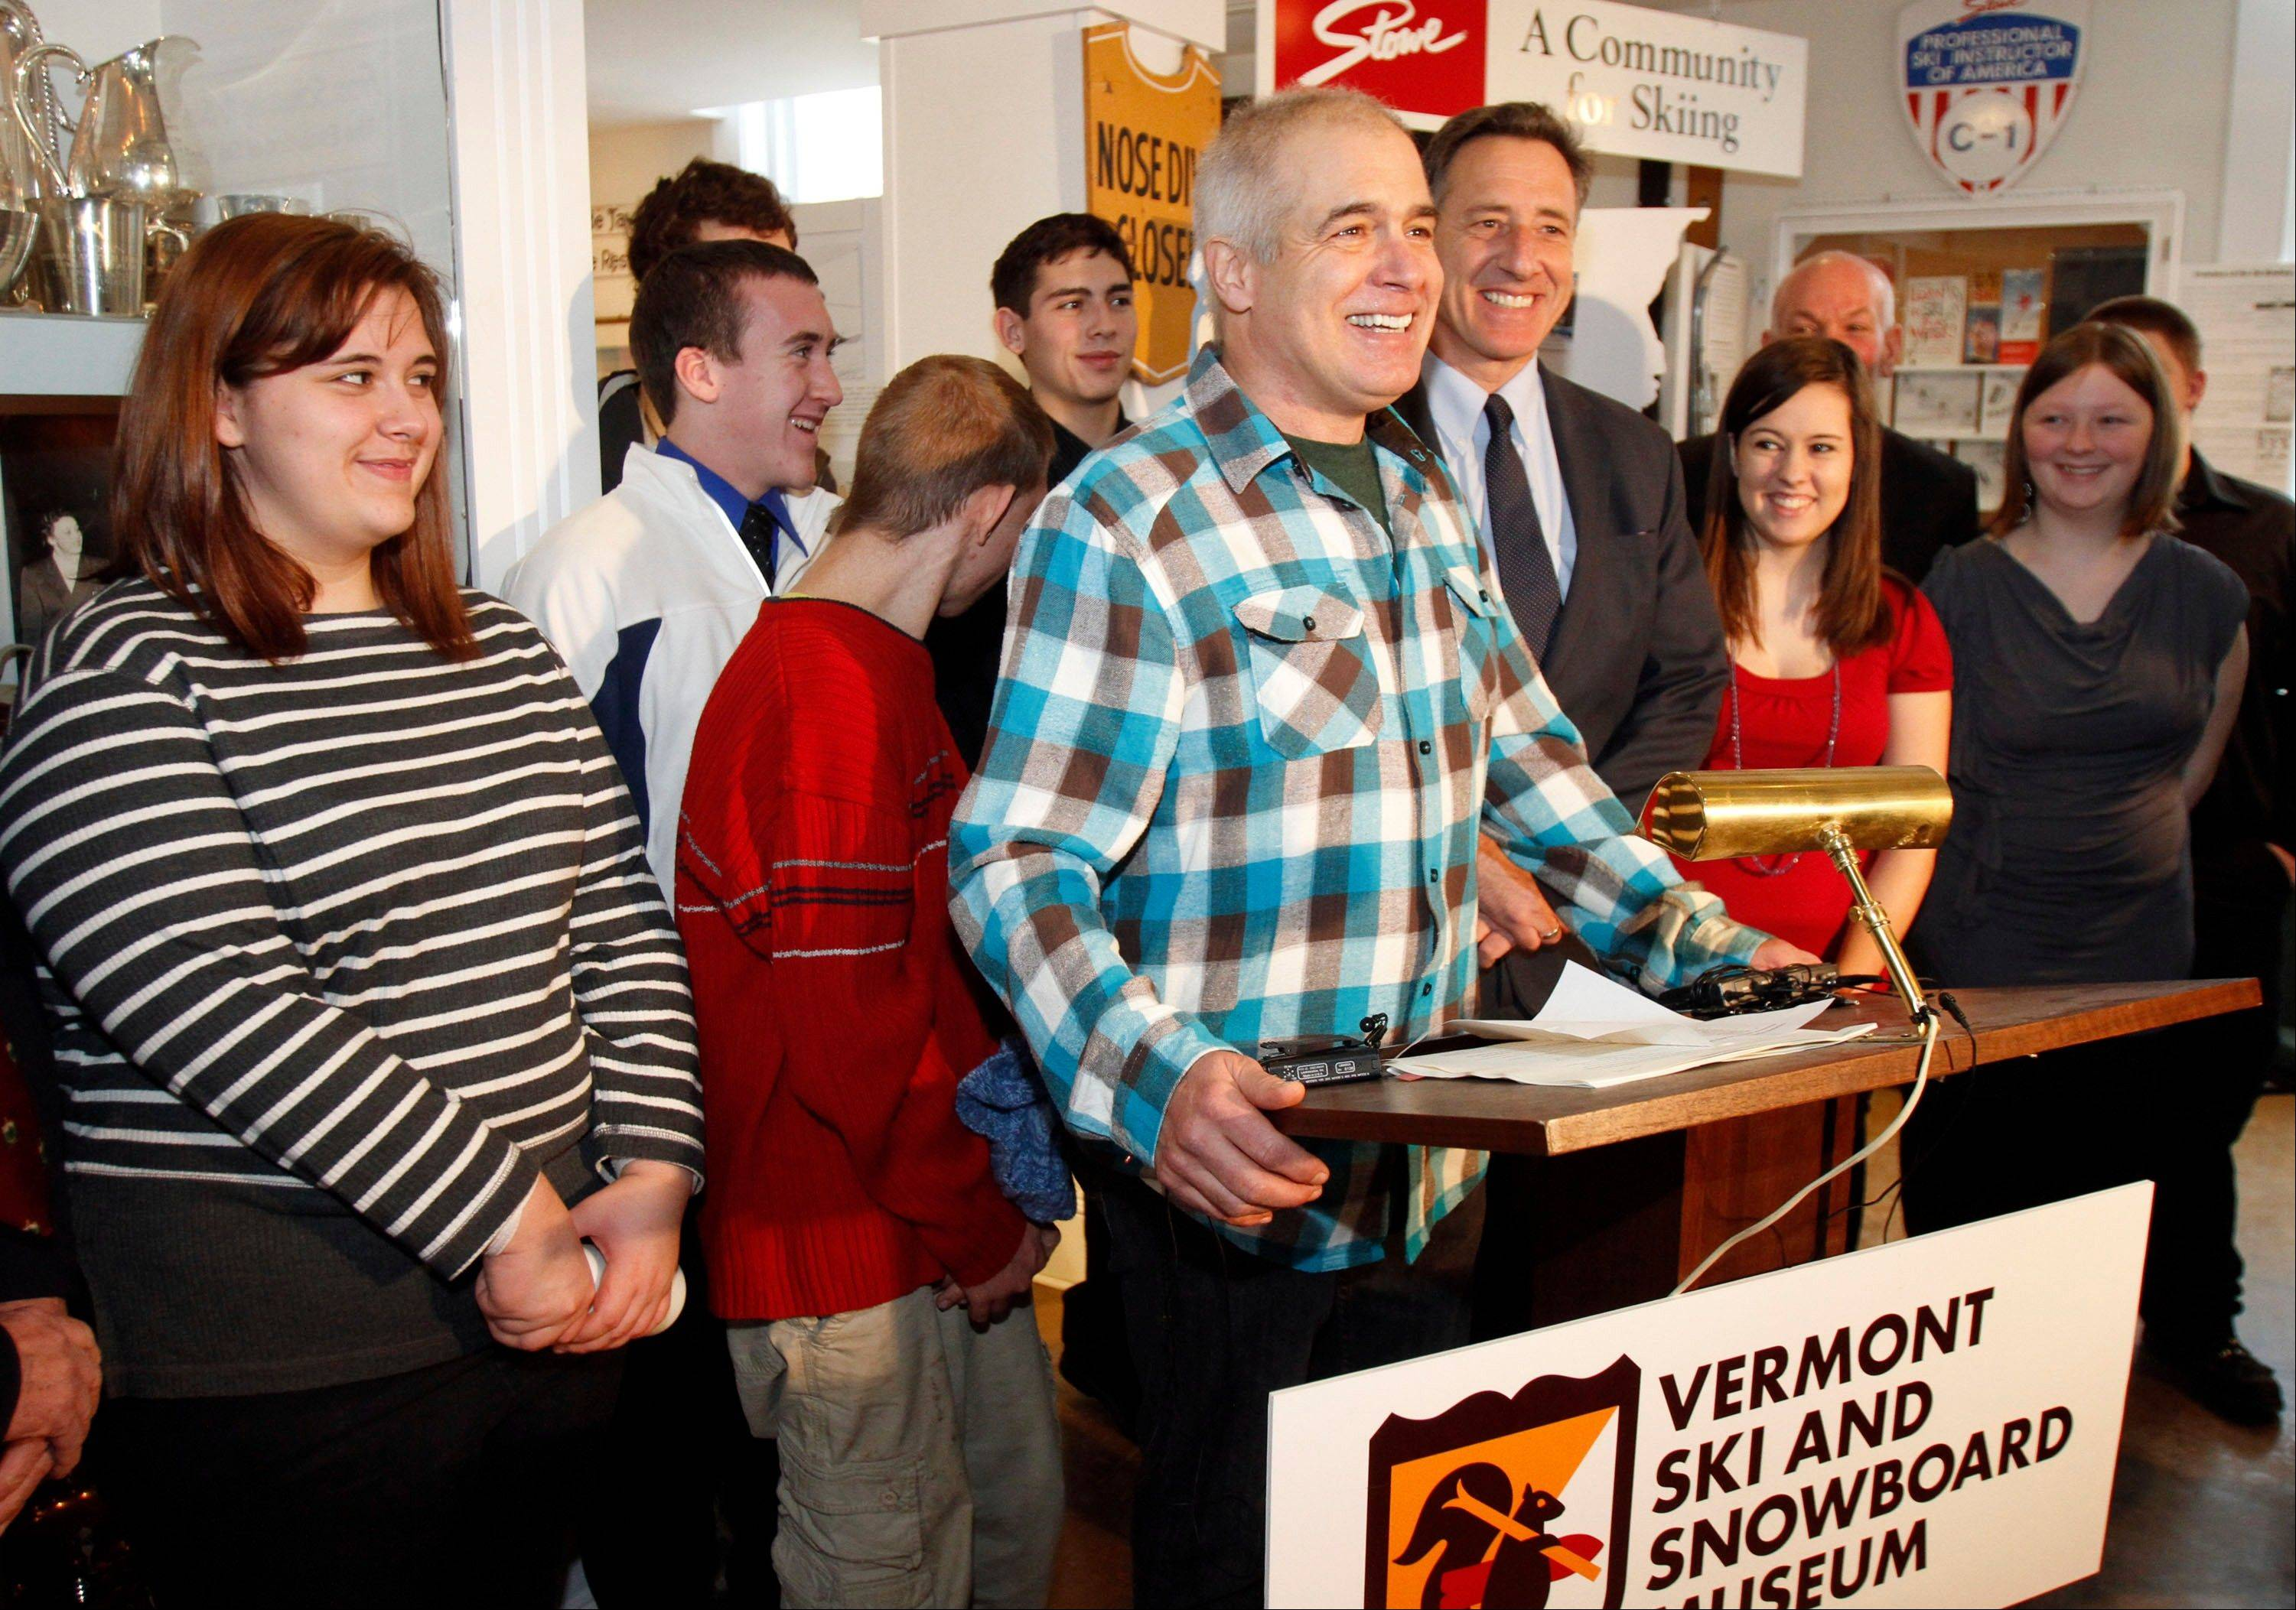 Jake Burton, the creator of Burton Snowboards, center, speaks during a bill signing with Gov. Peter Shumlin, right, in Stowe, Vt. Recent studies by industry groups show snowboarding is no longer growing the way it was for its first 30 years.